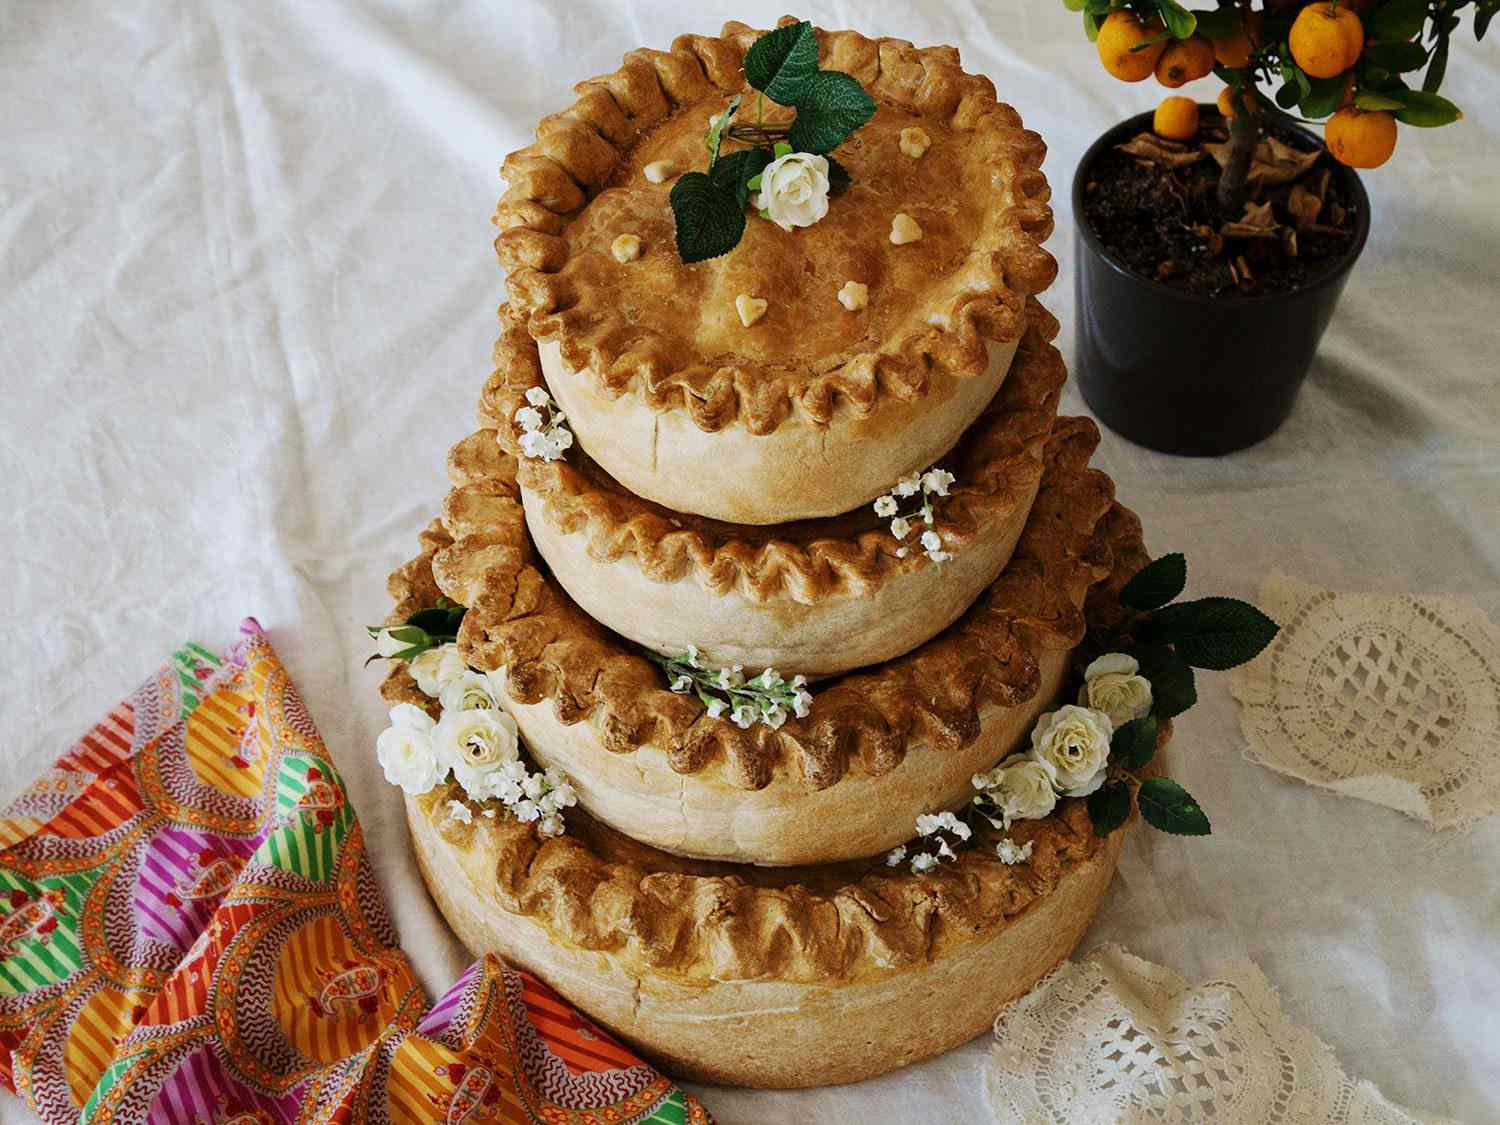 A four-tiered pork pie for a wedding, decorated with flowers